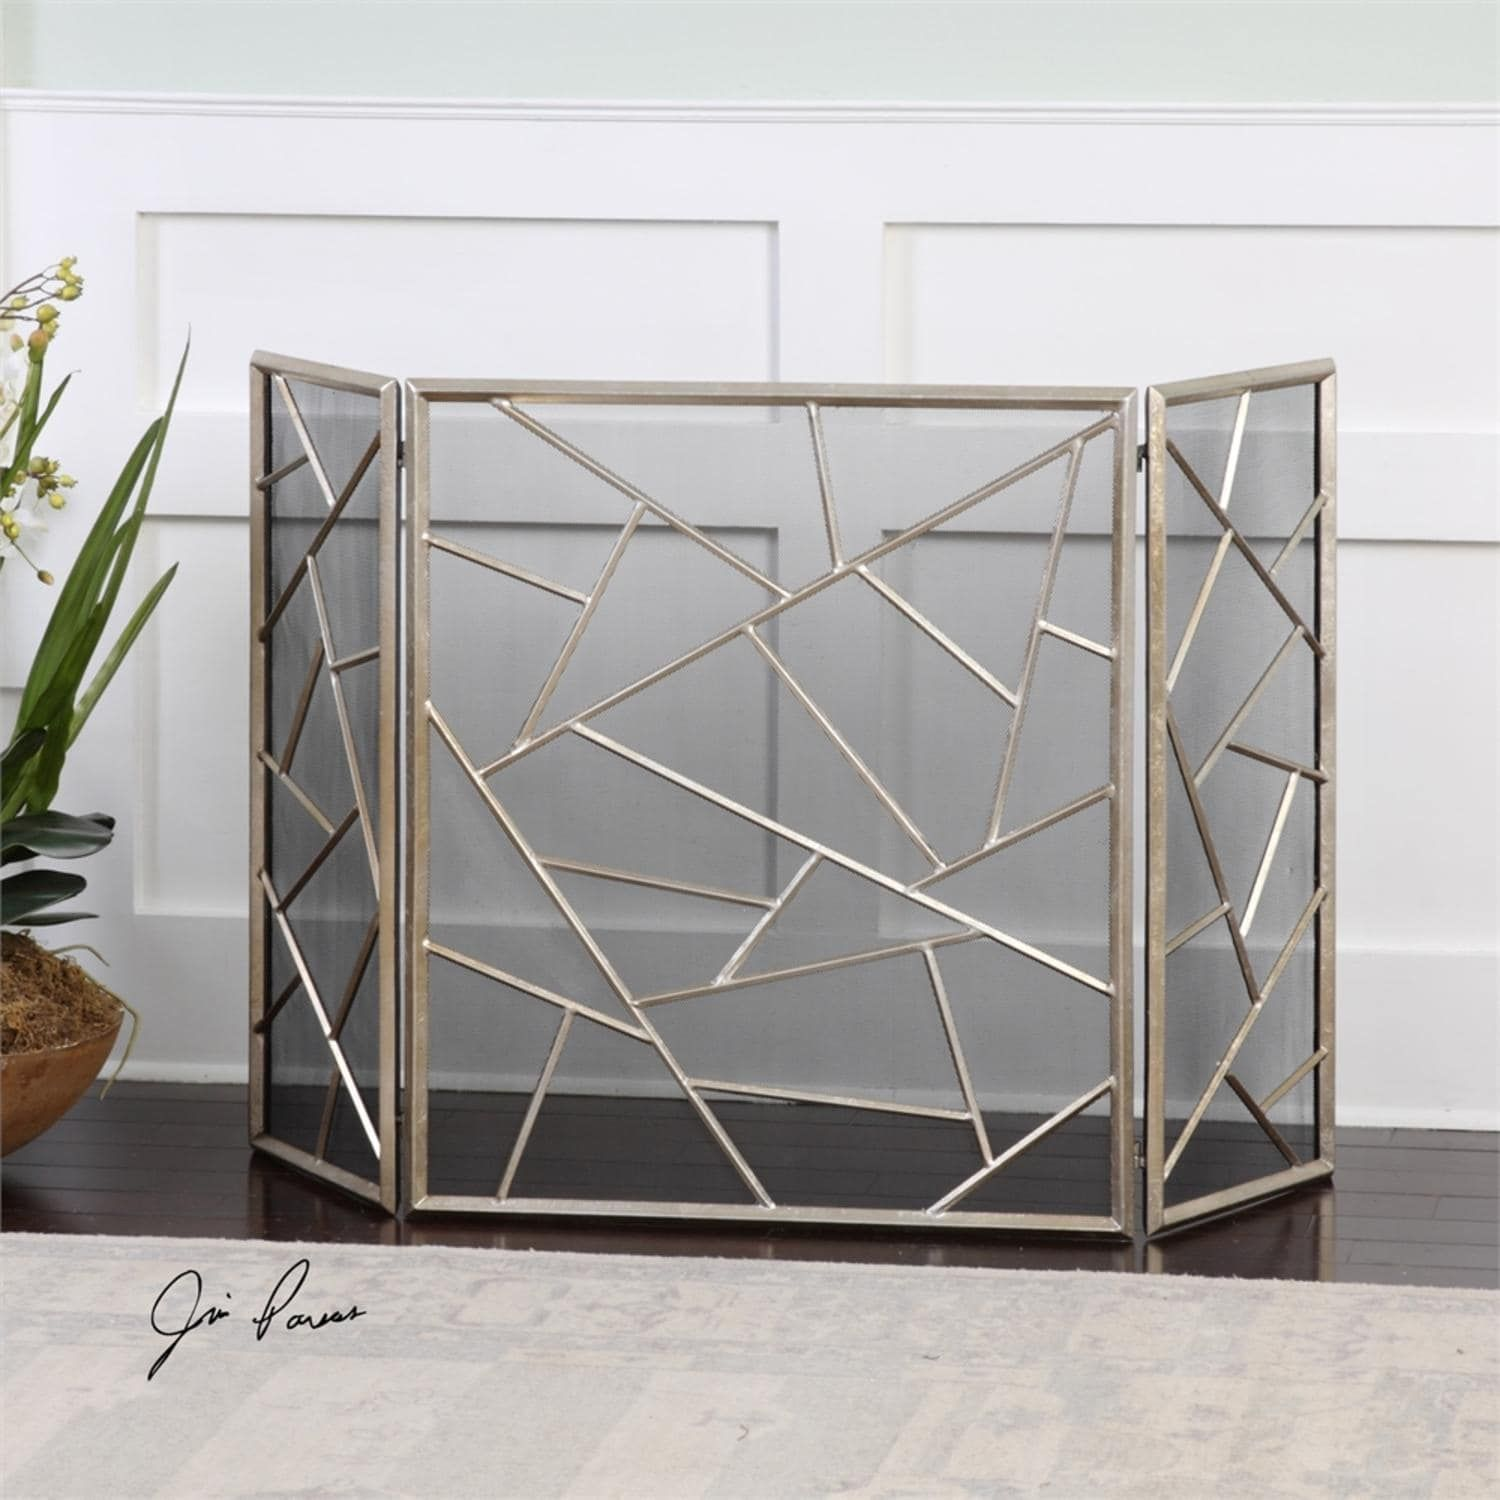 51 modern silver leaf decorative abstract fireplace screen